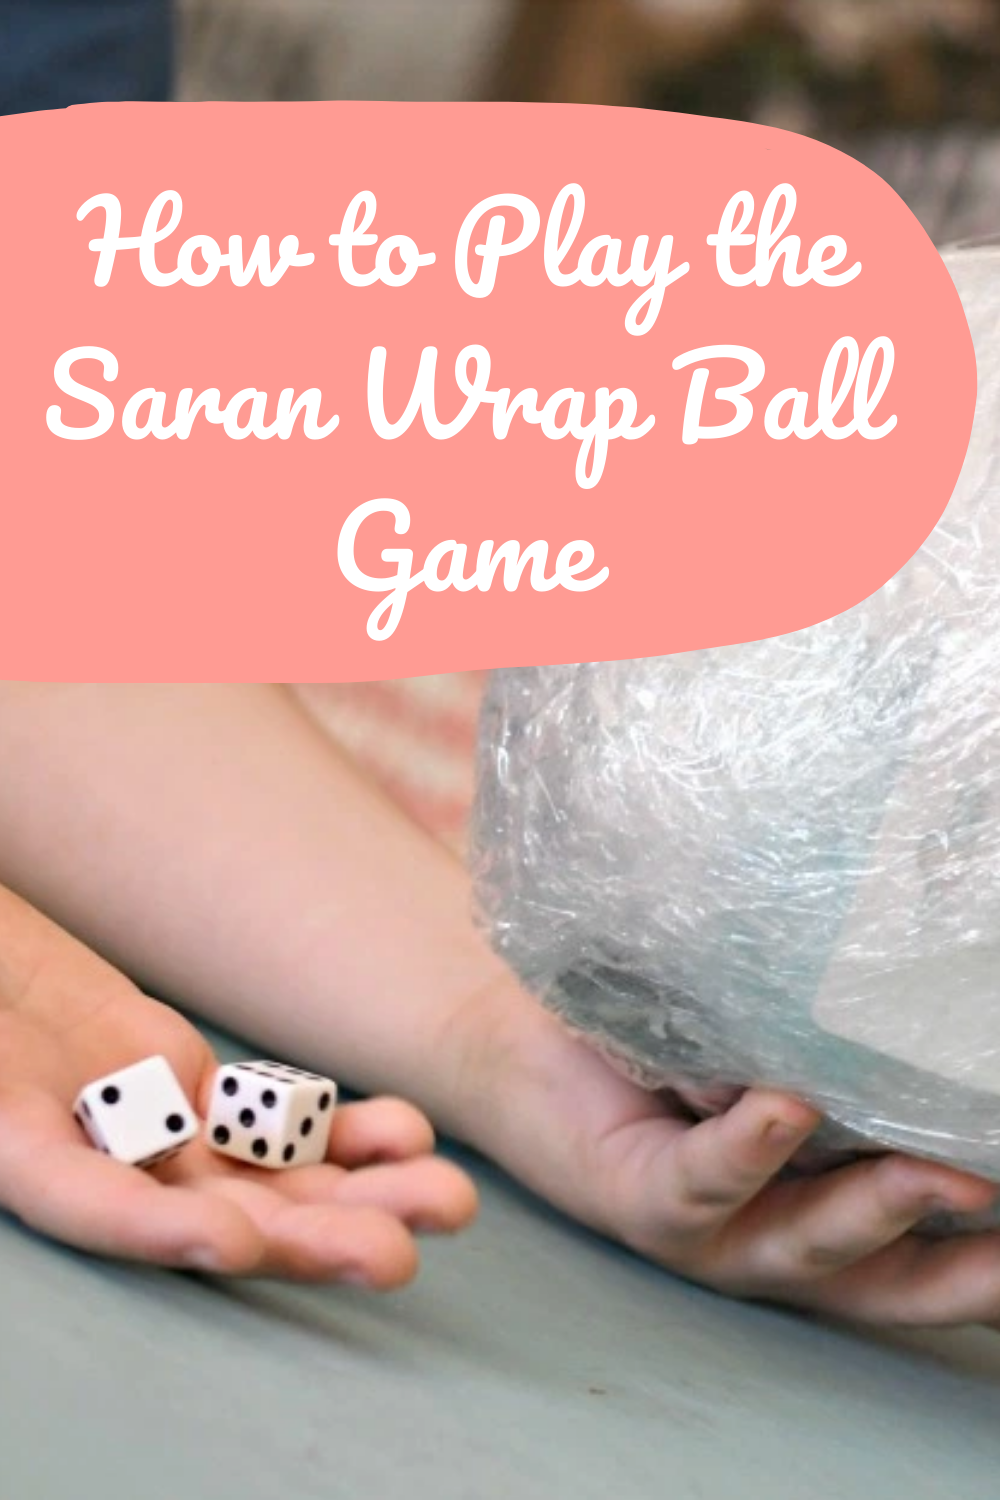 How to Play Saran Wrap Ball Game With Step by Step Instructions